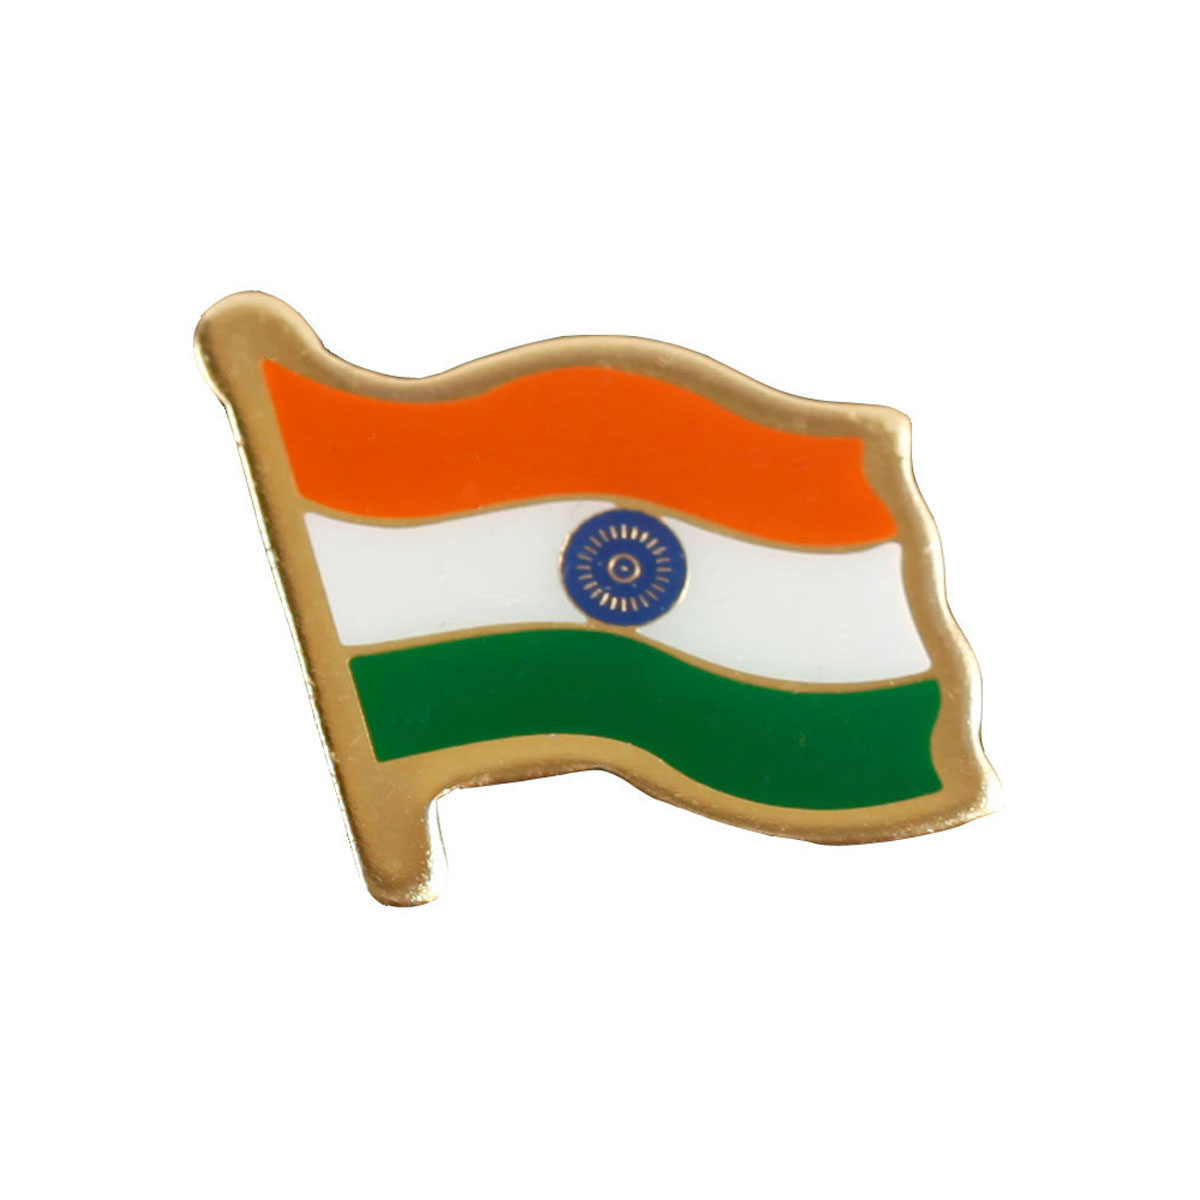 Indian Flag Brass Lapel Pin / Brooch / Badge - Large Size